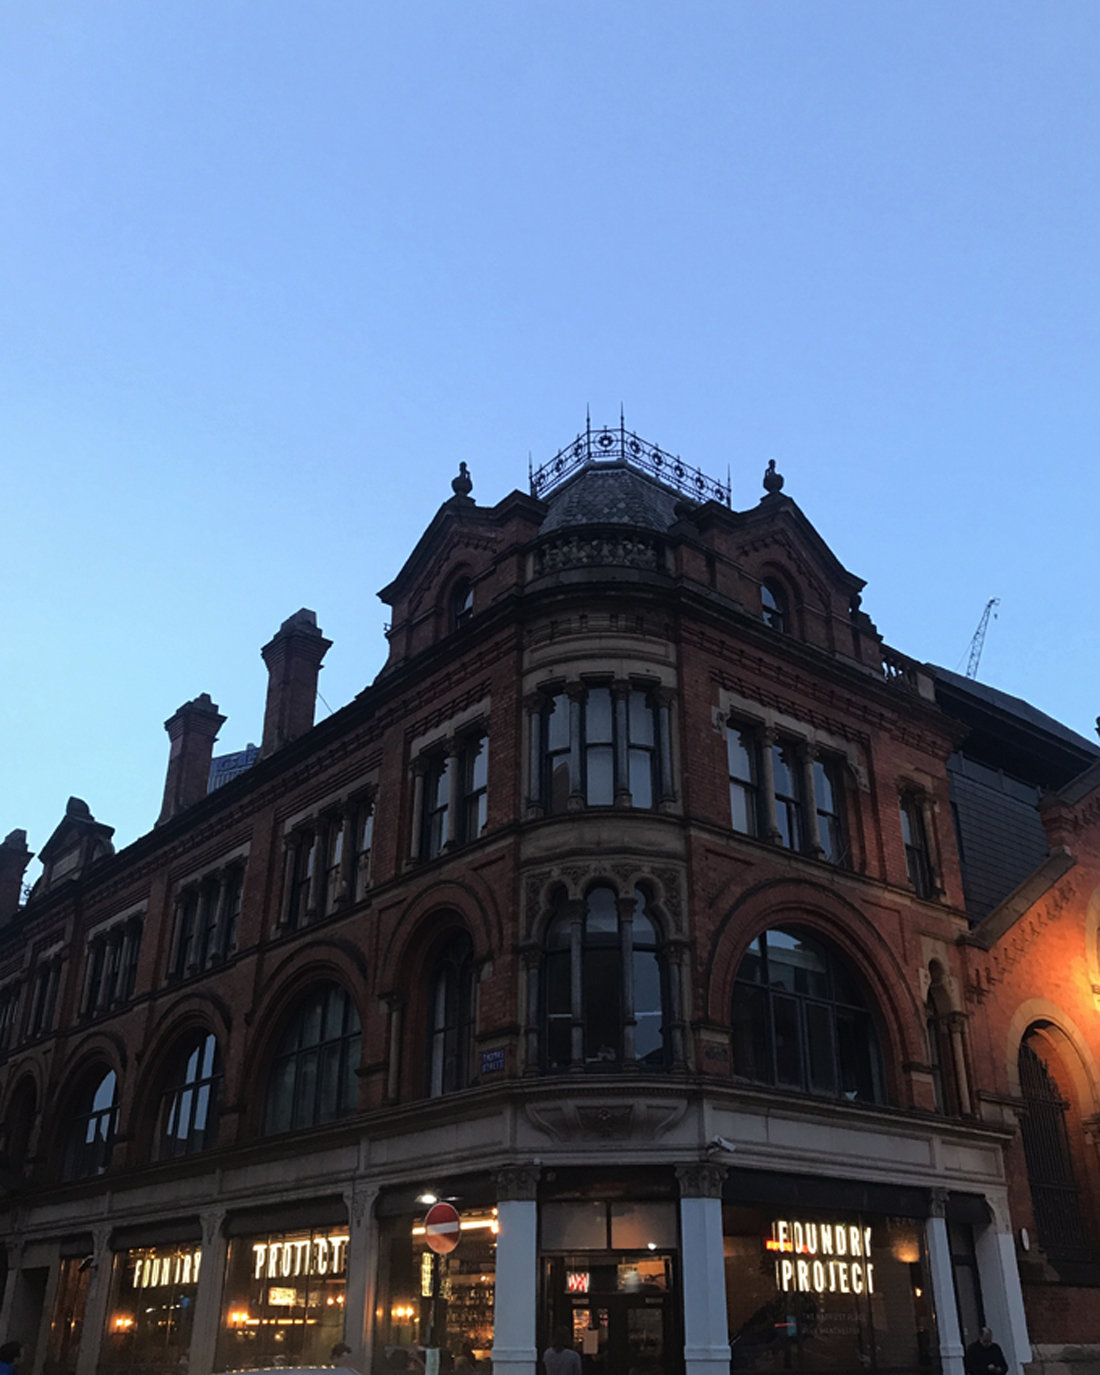 Hidden Gems: A rainy day out in Manchester - Foundry Project